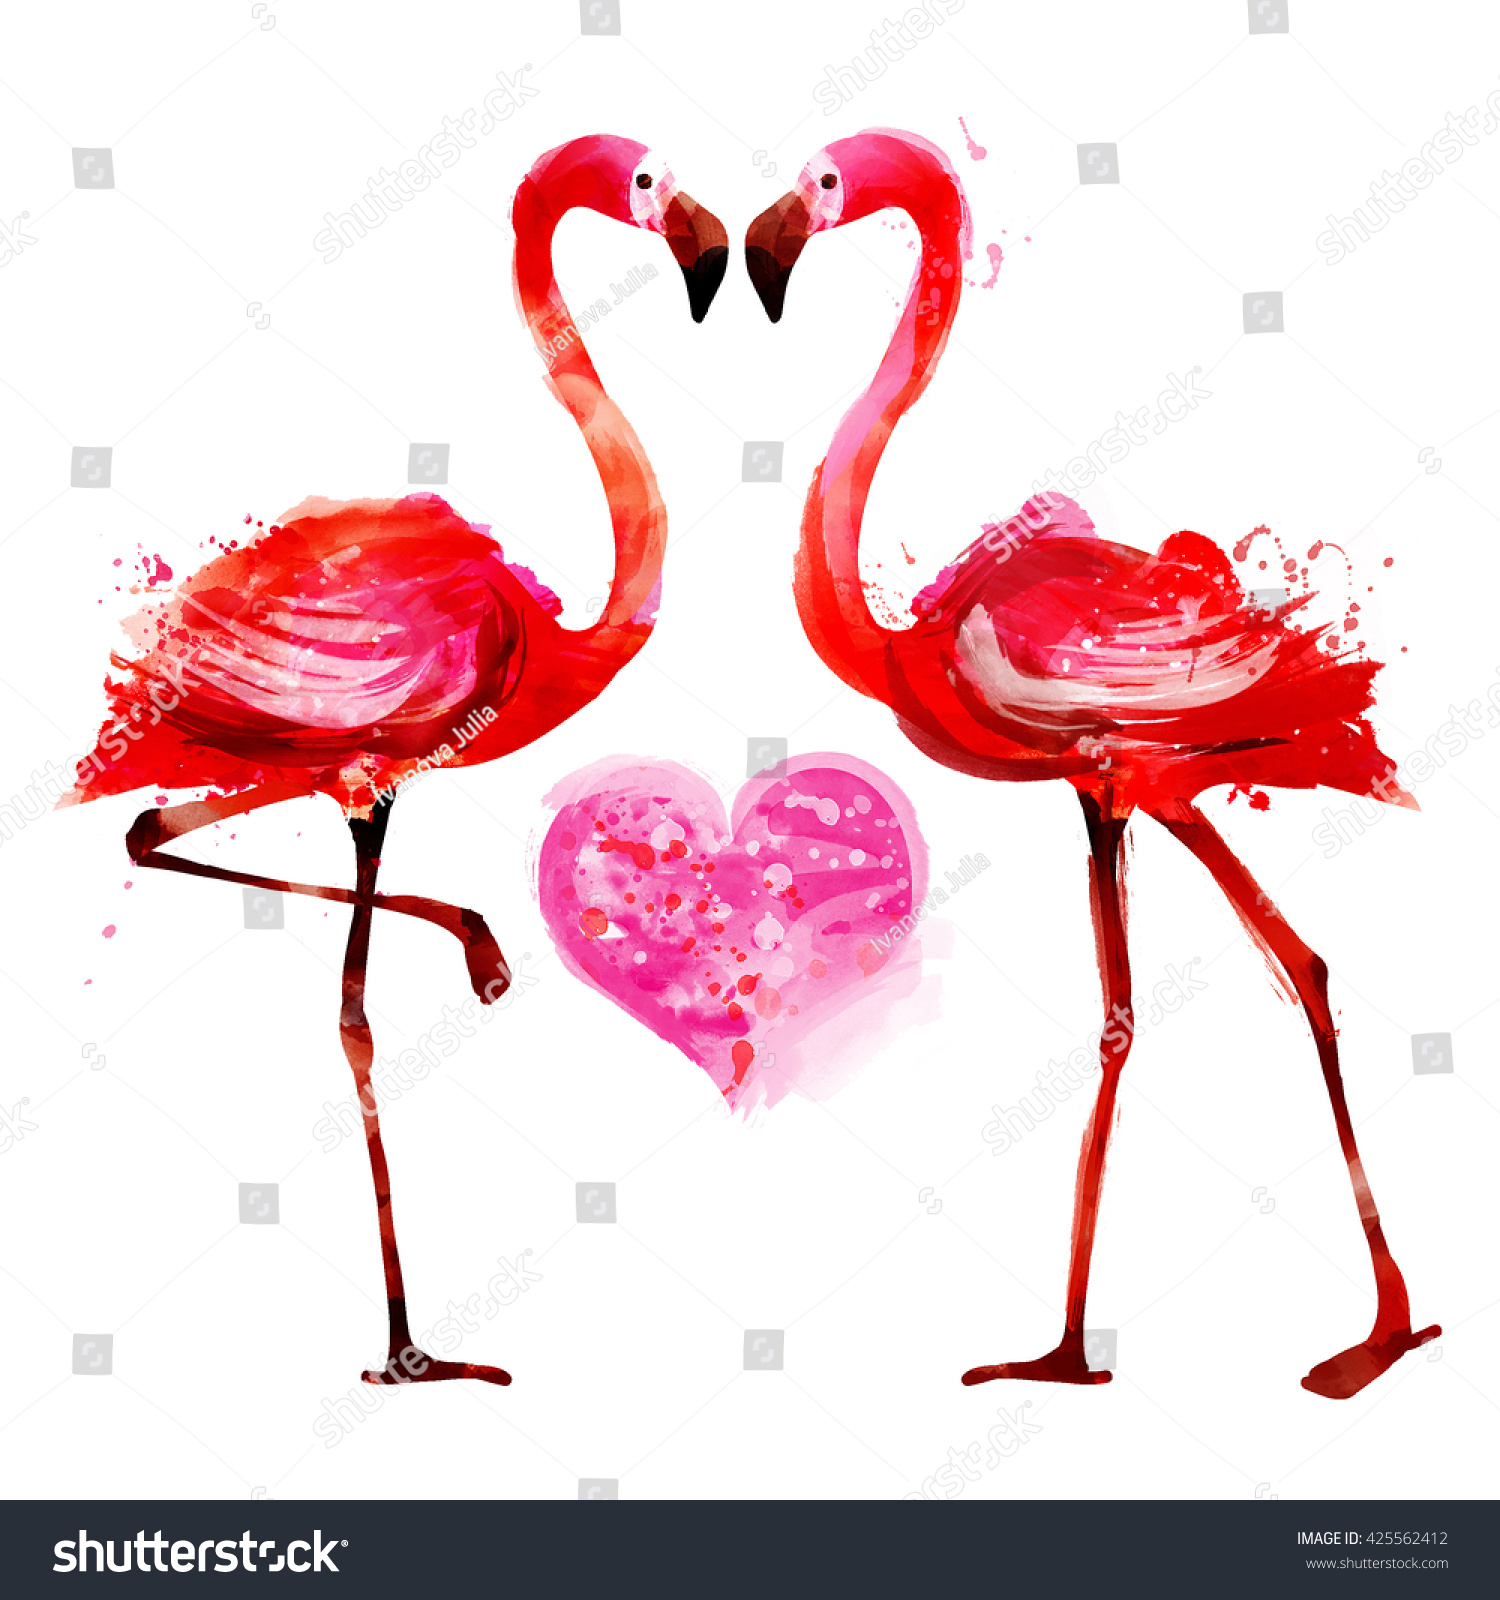 Royalty Free Stock Illustration of Flamingo Couplewatercolor Stock ...